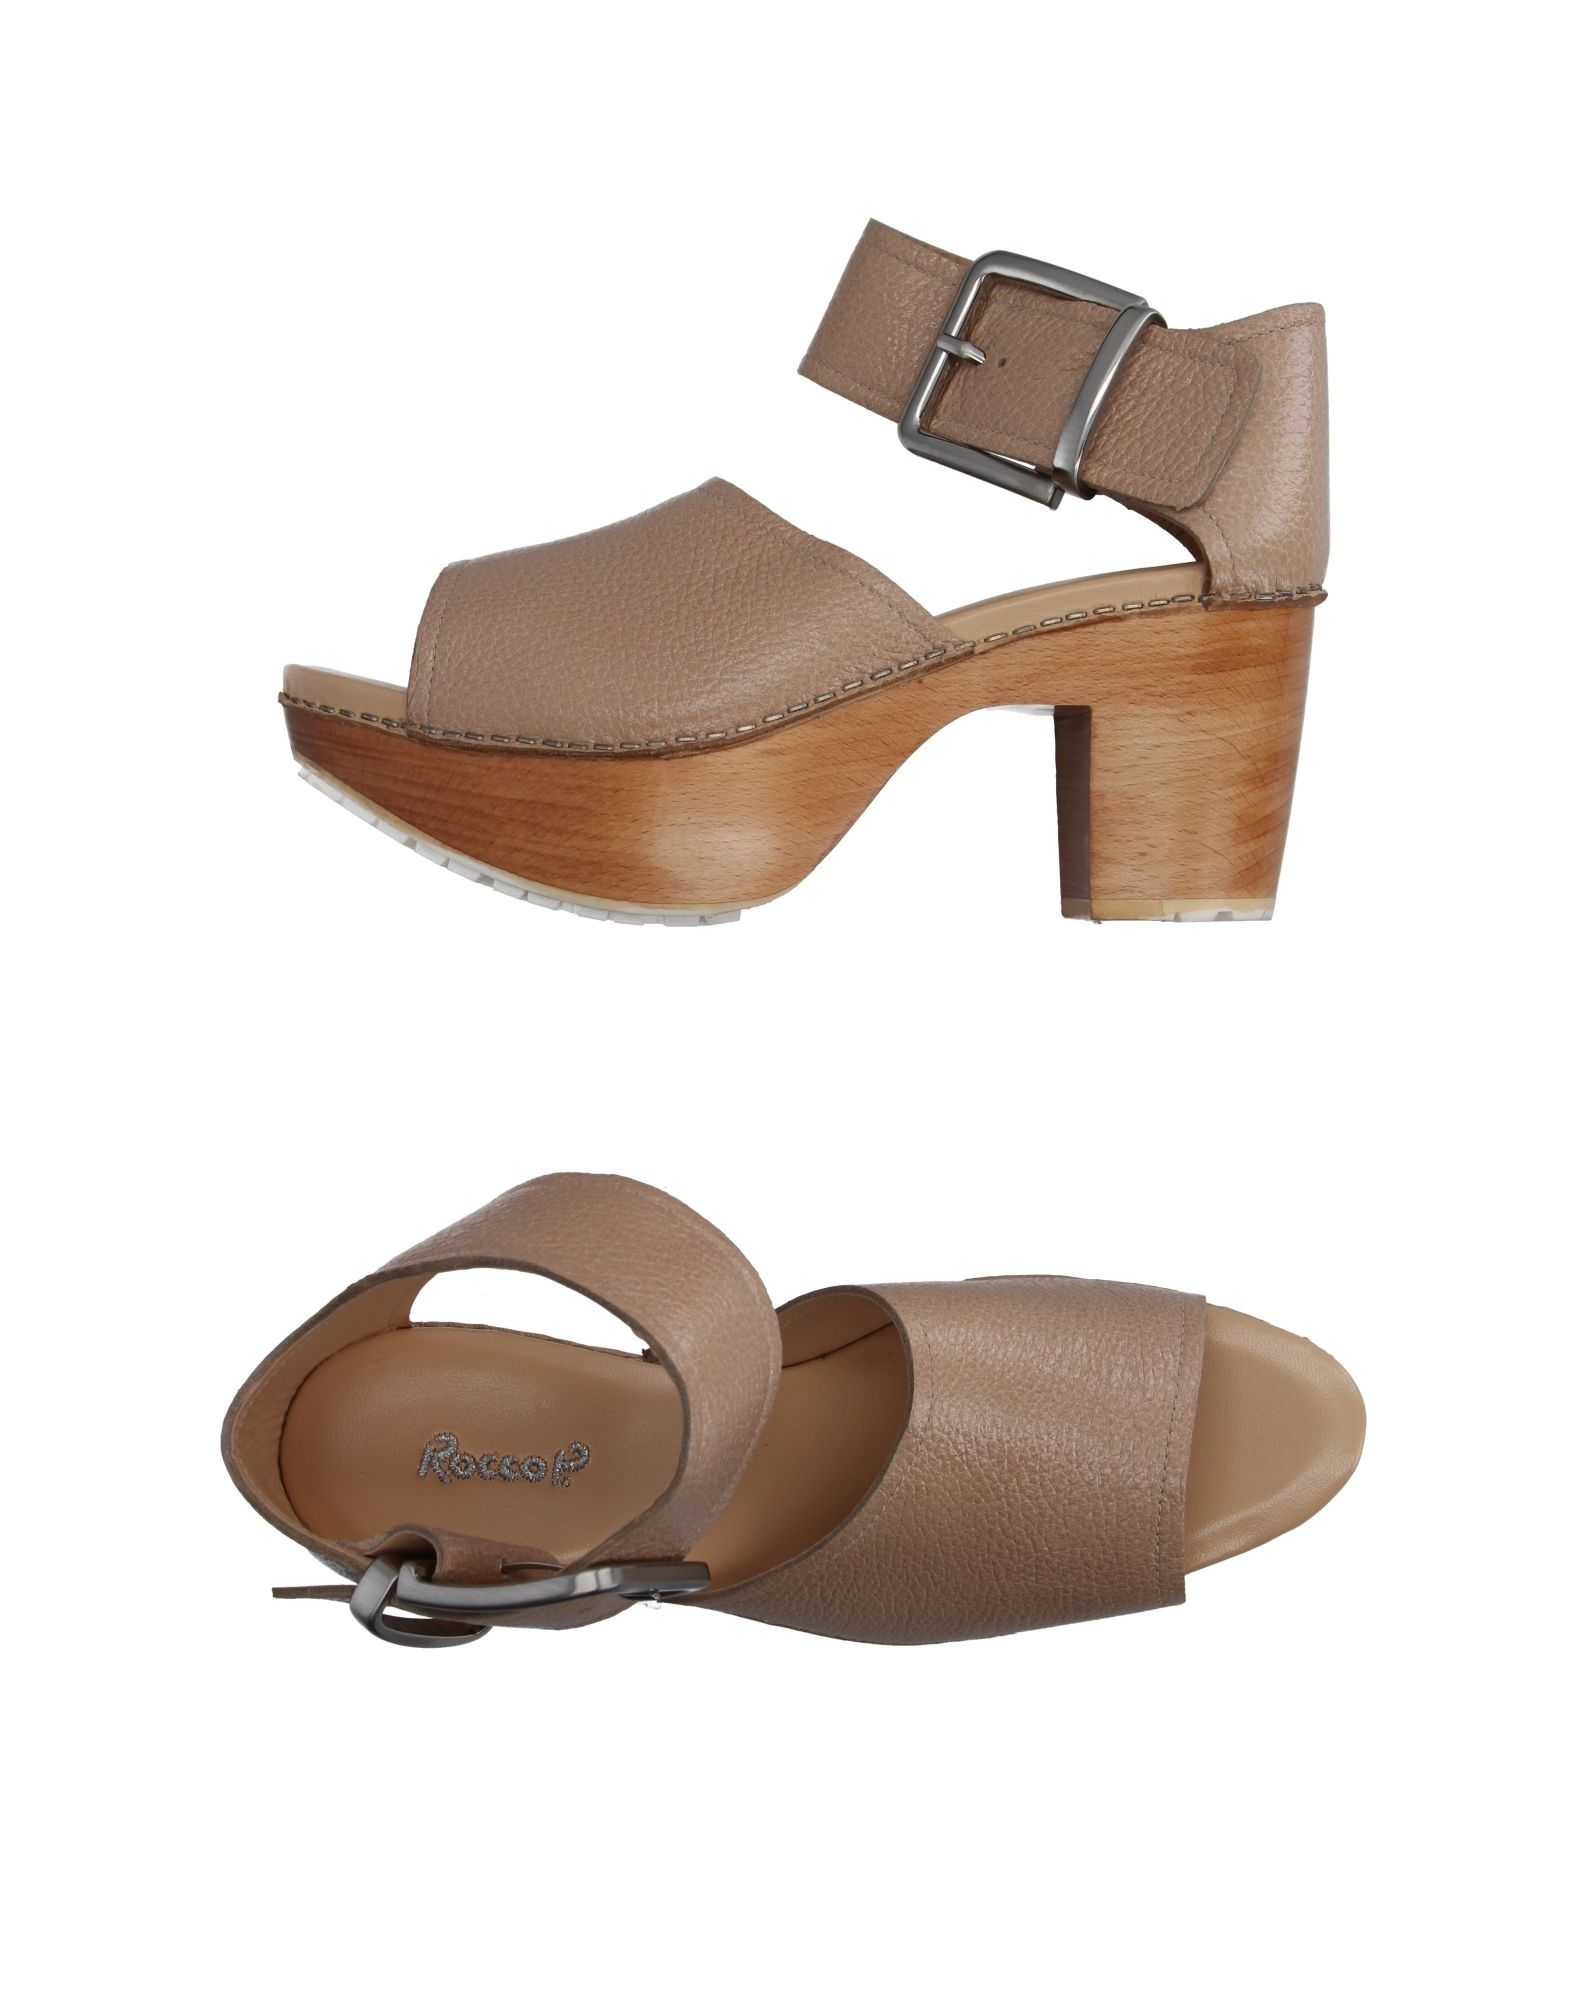 CHAUSSURES - SandalesRocco P. kQ3rB7FO6